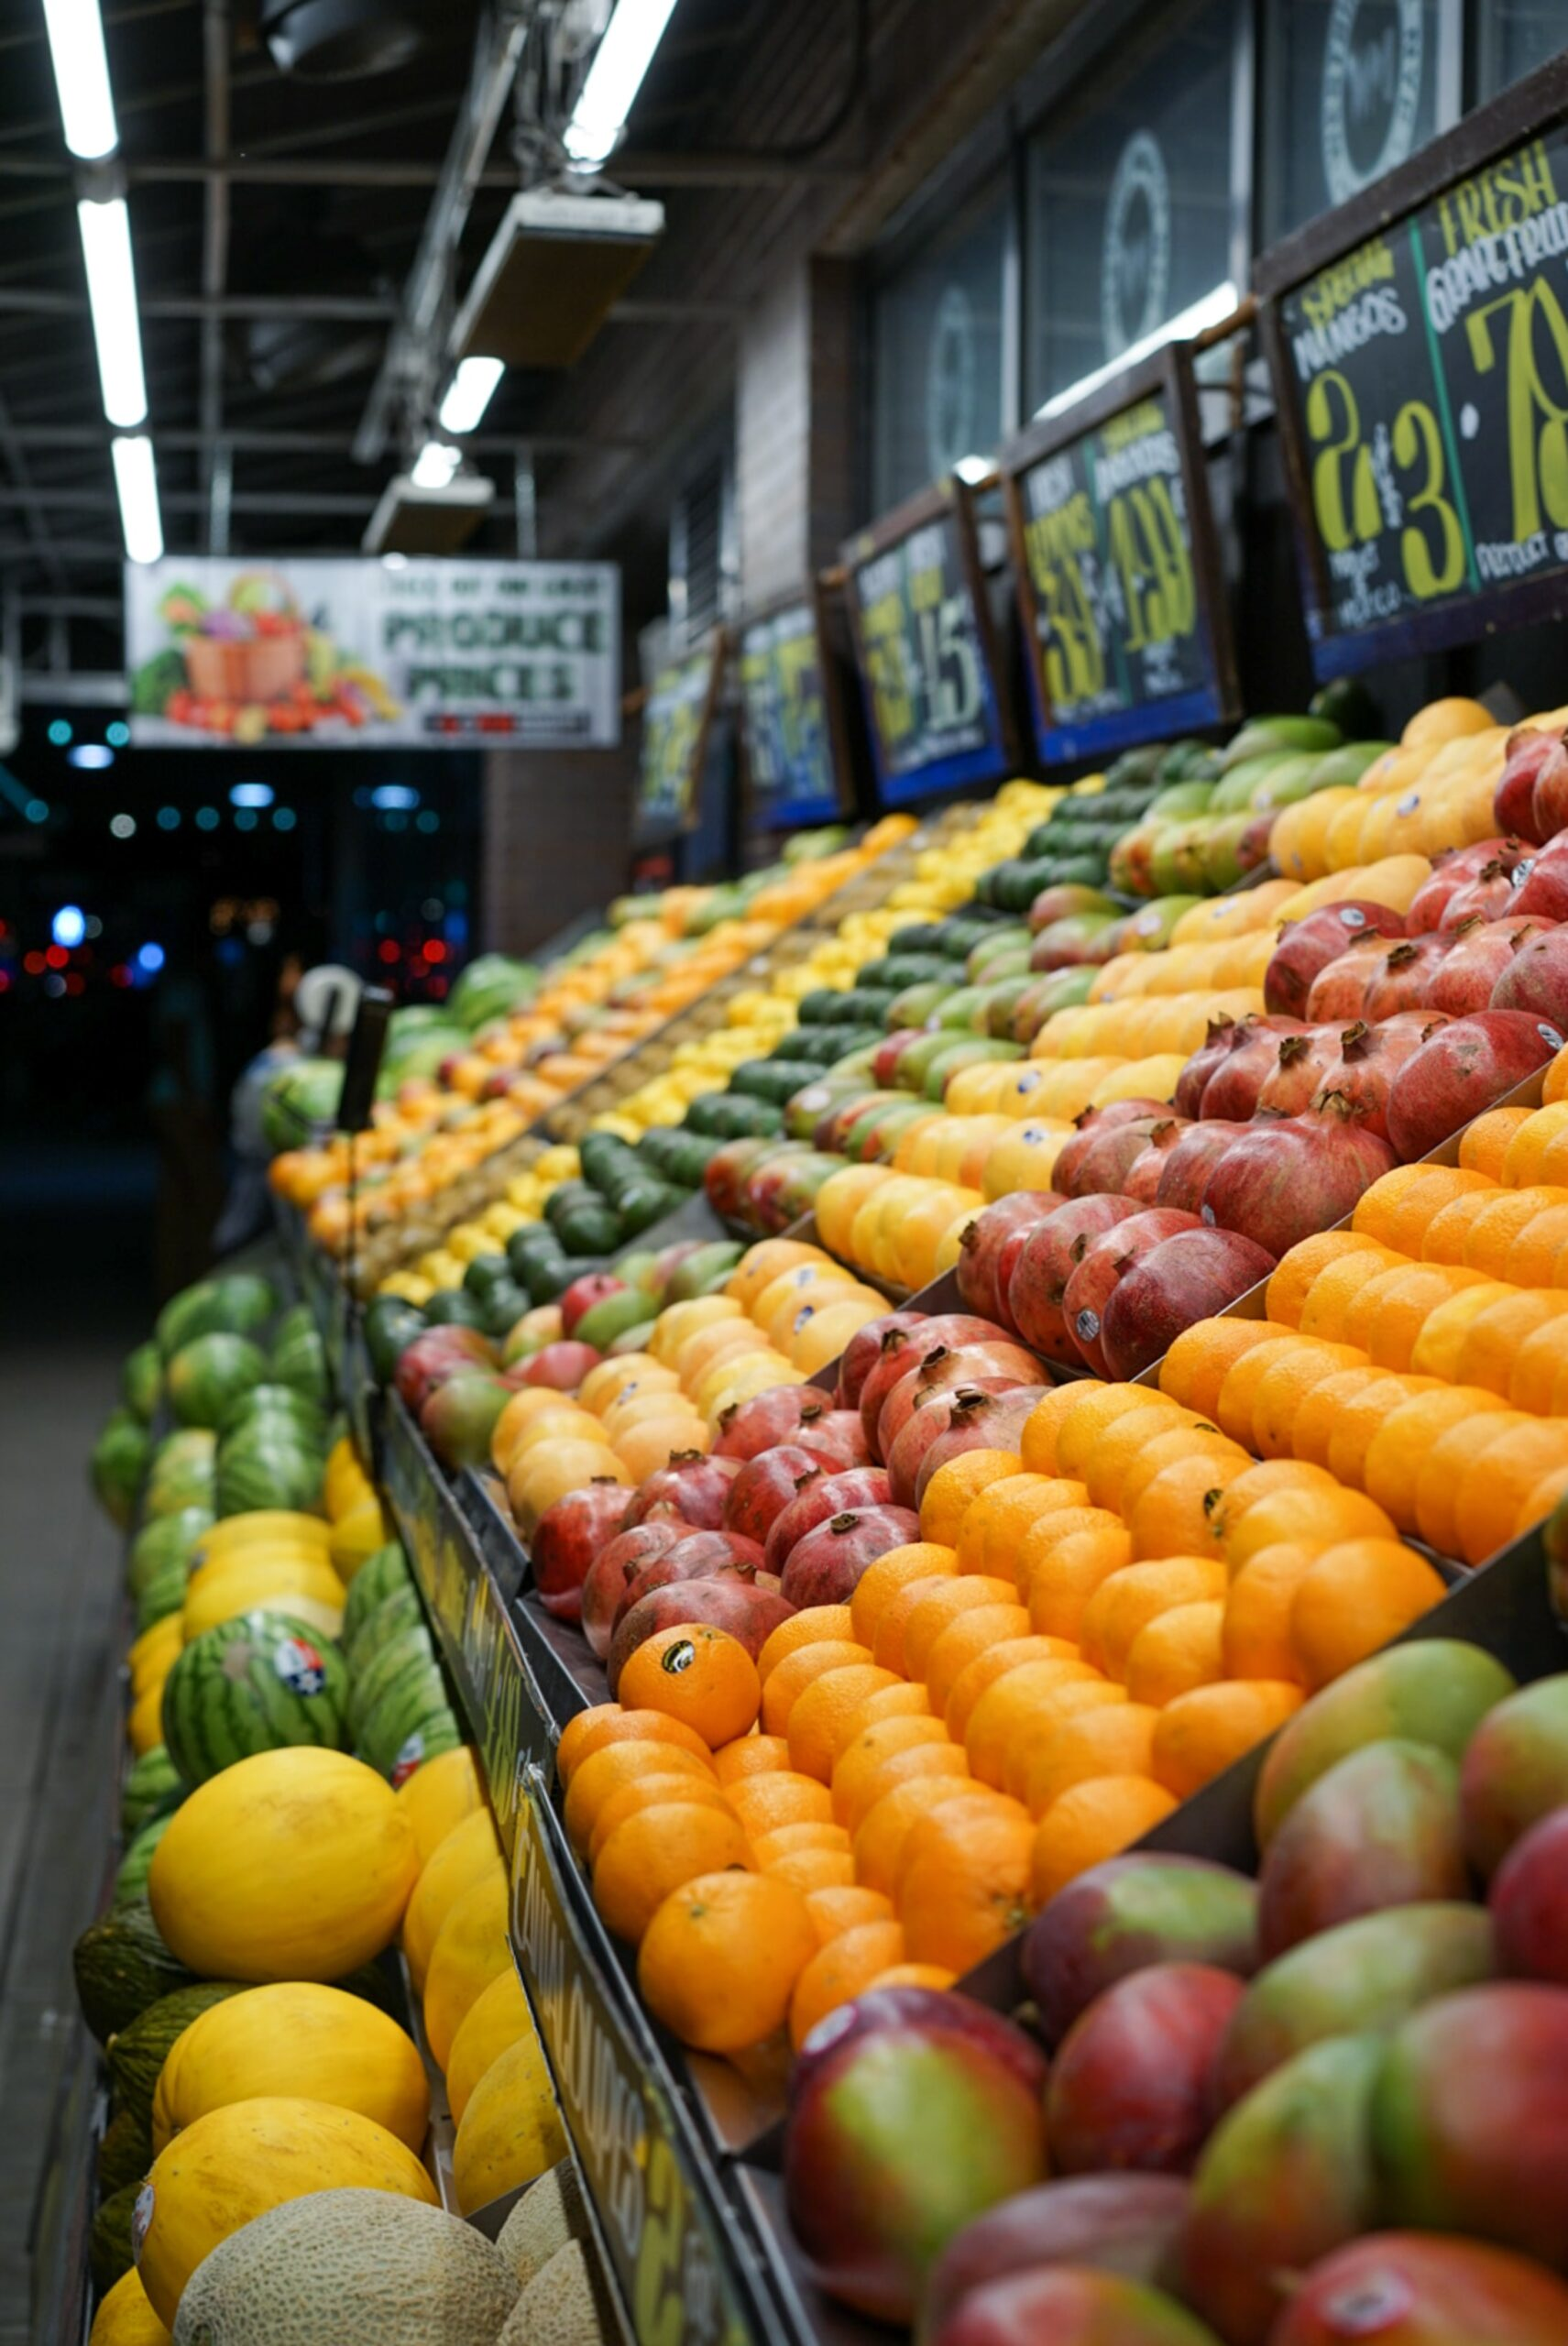 Online Class: 10 Minute Virtual Grocery Store Tour